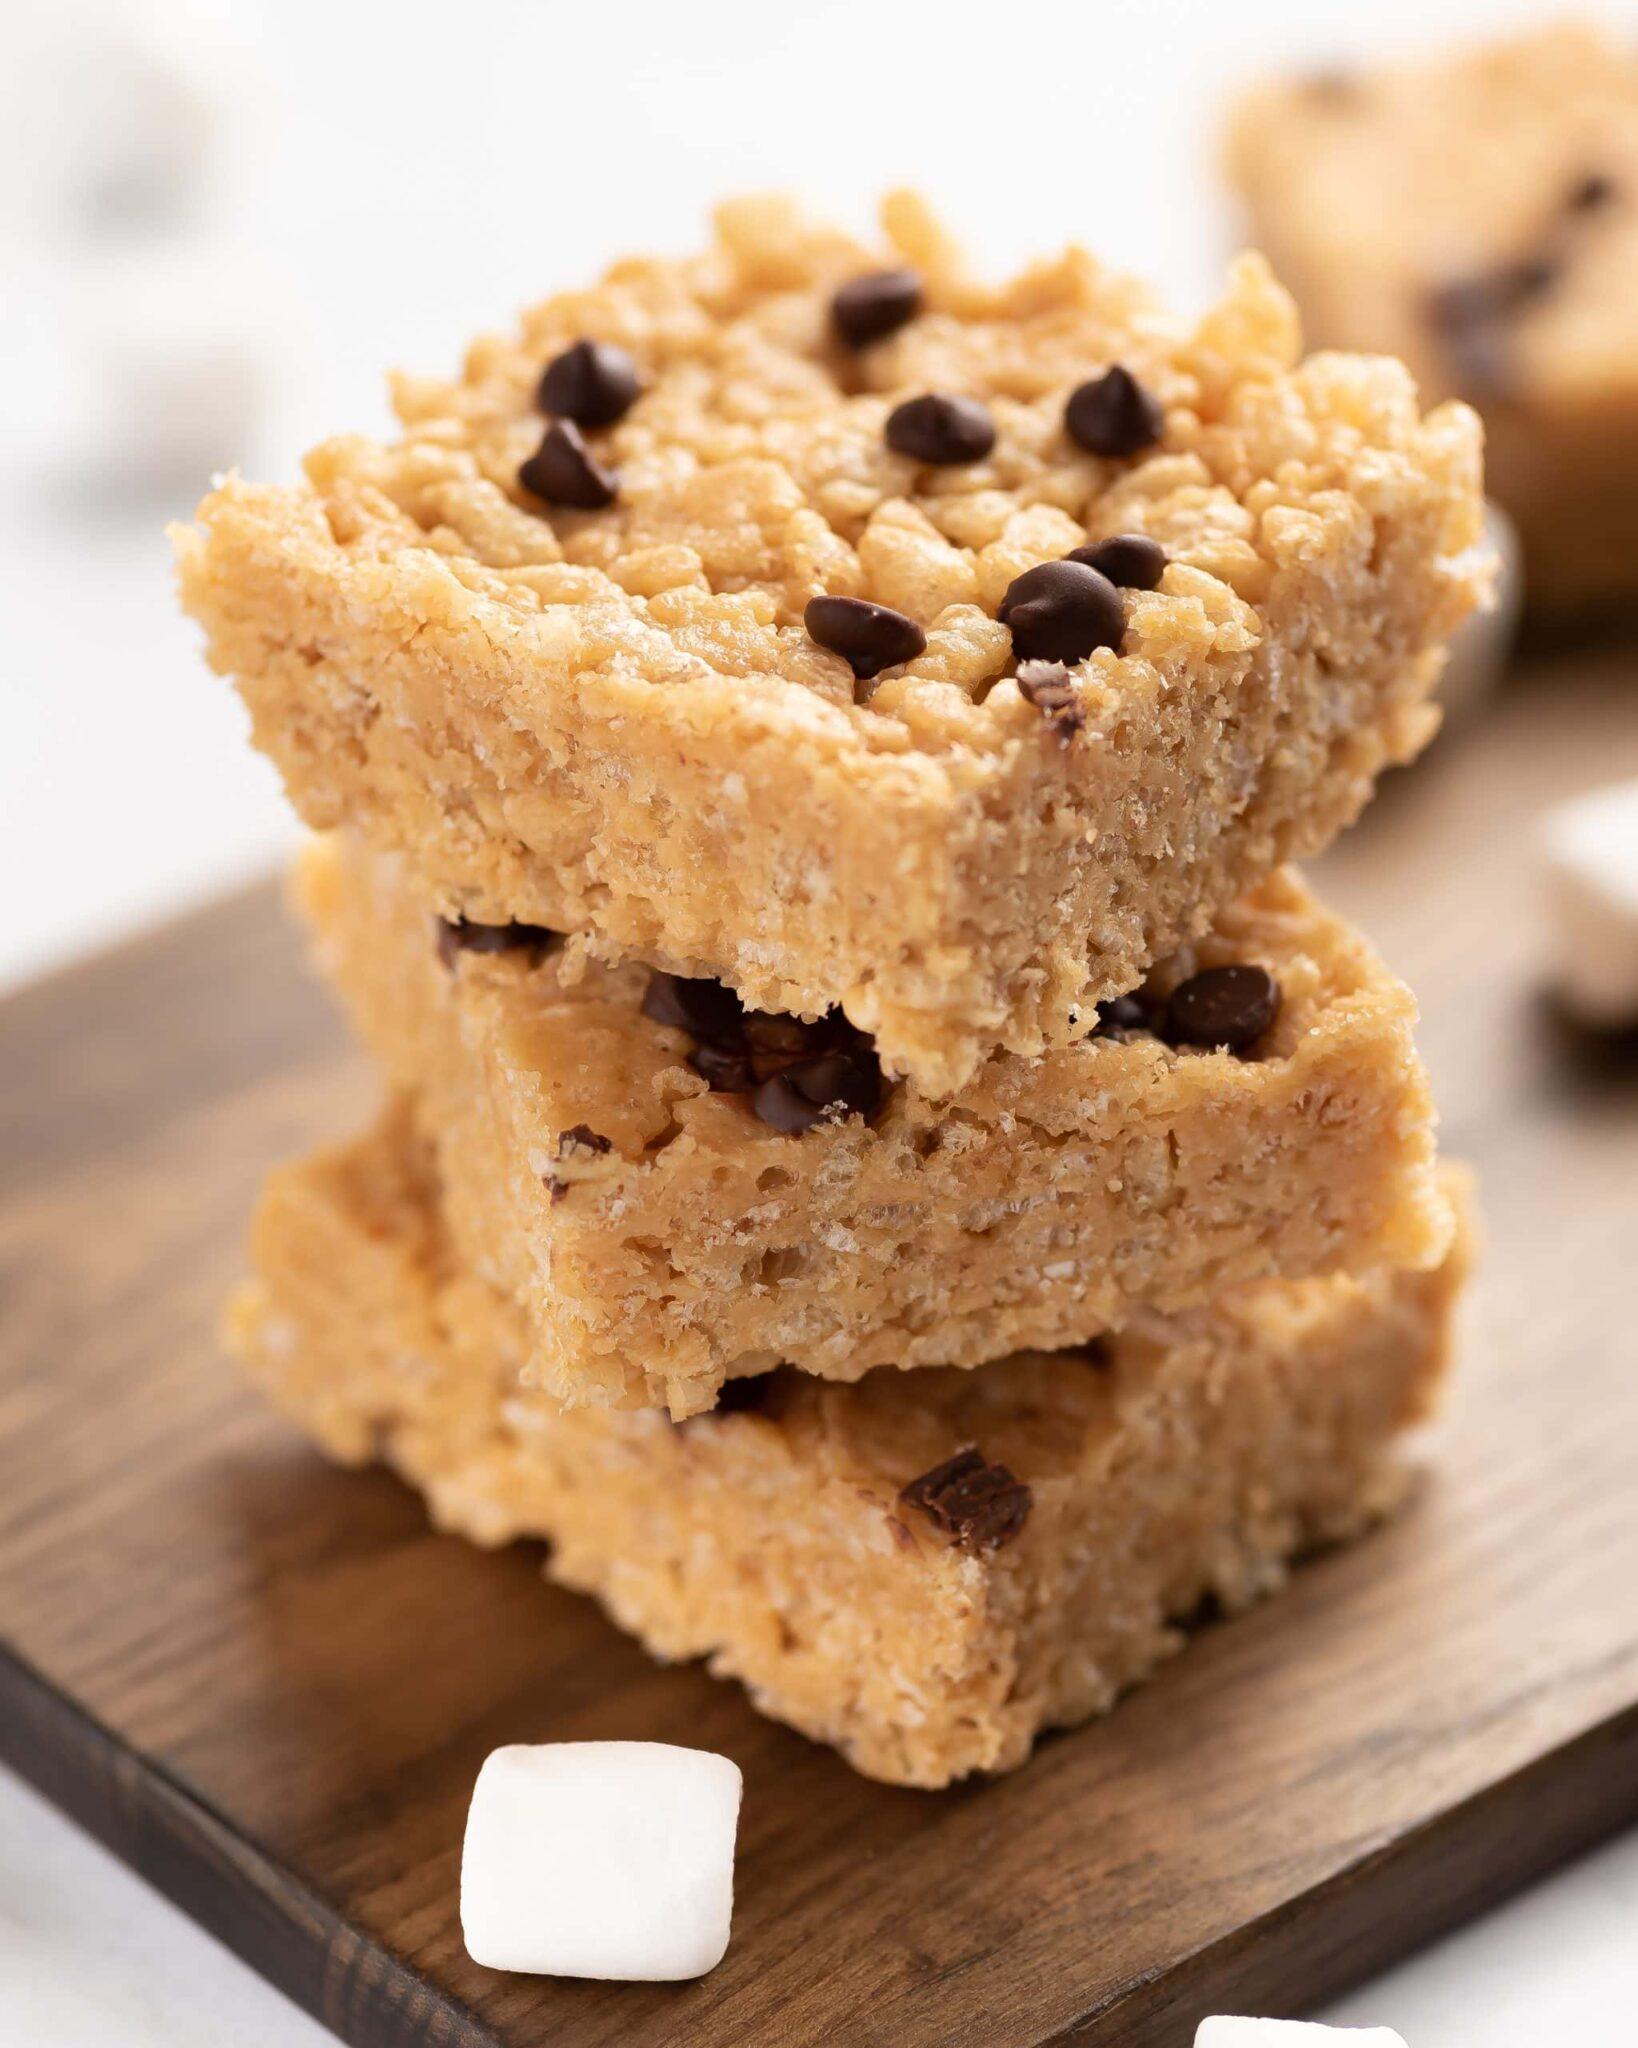 Rice krispies treats topped with mini chocolate chips.